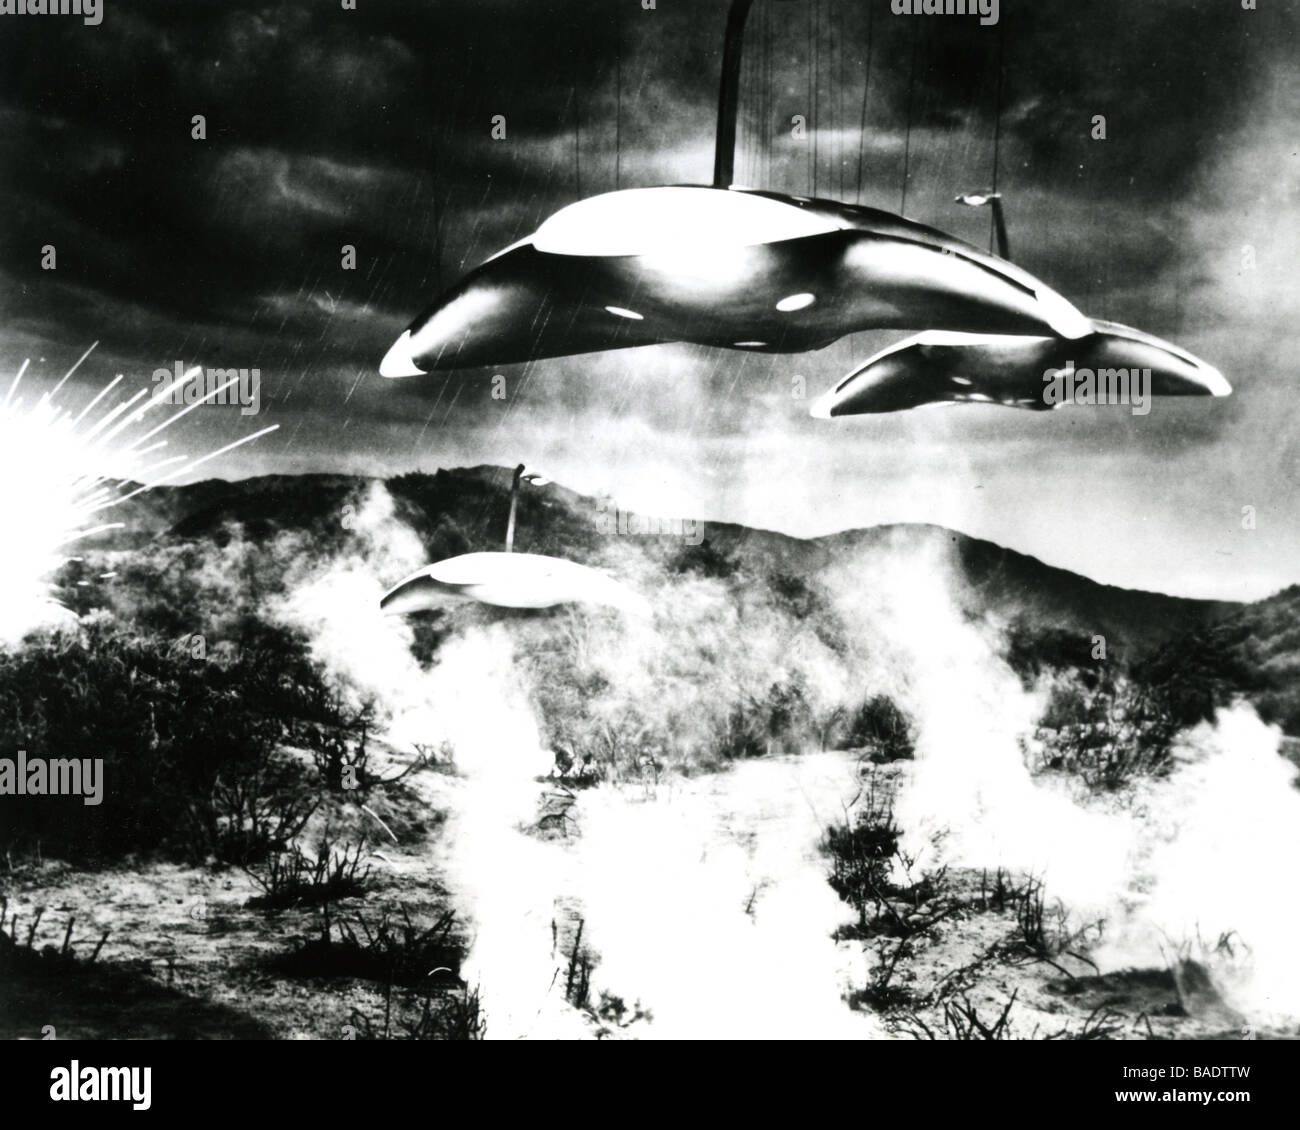 THE WAR OF THE WORLDS 1953 Paramount film based on the sci-fi novel by HG Wells - Stock Image